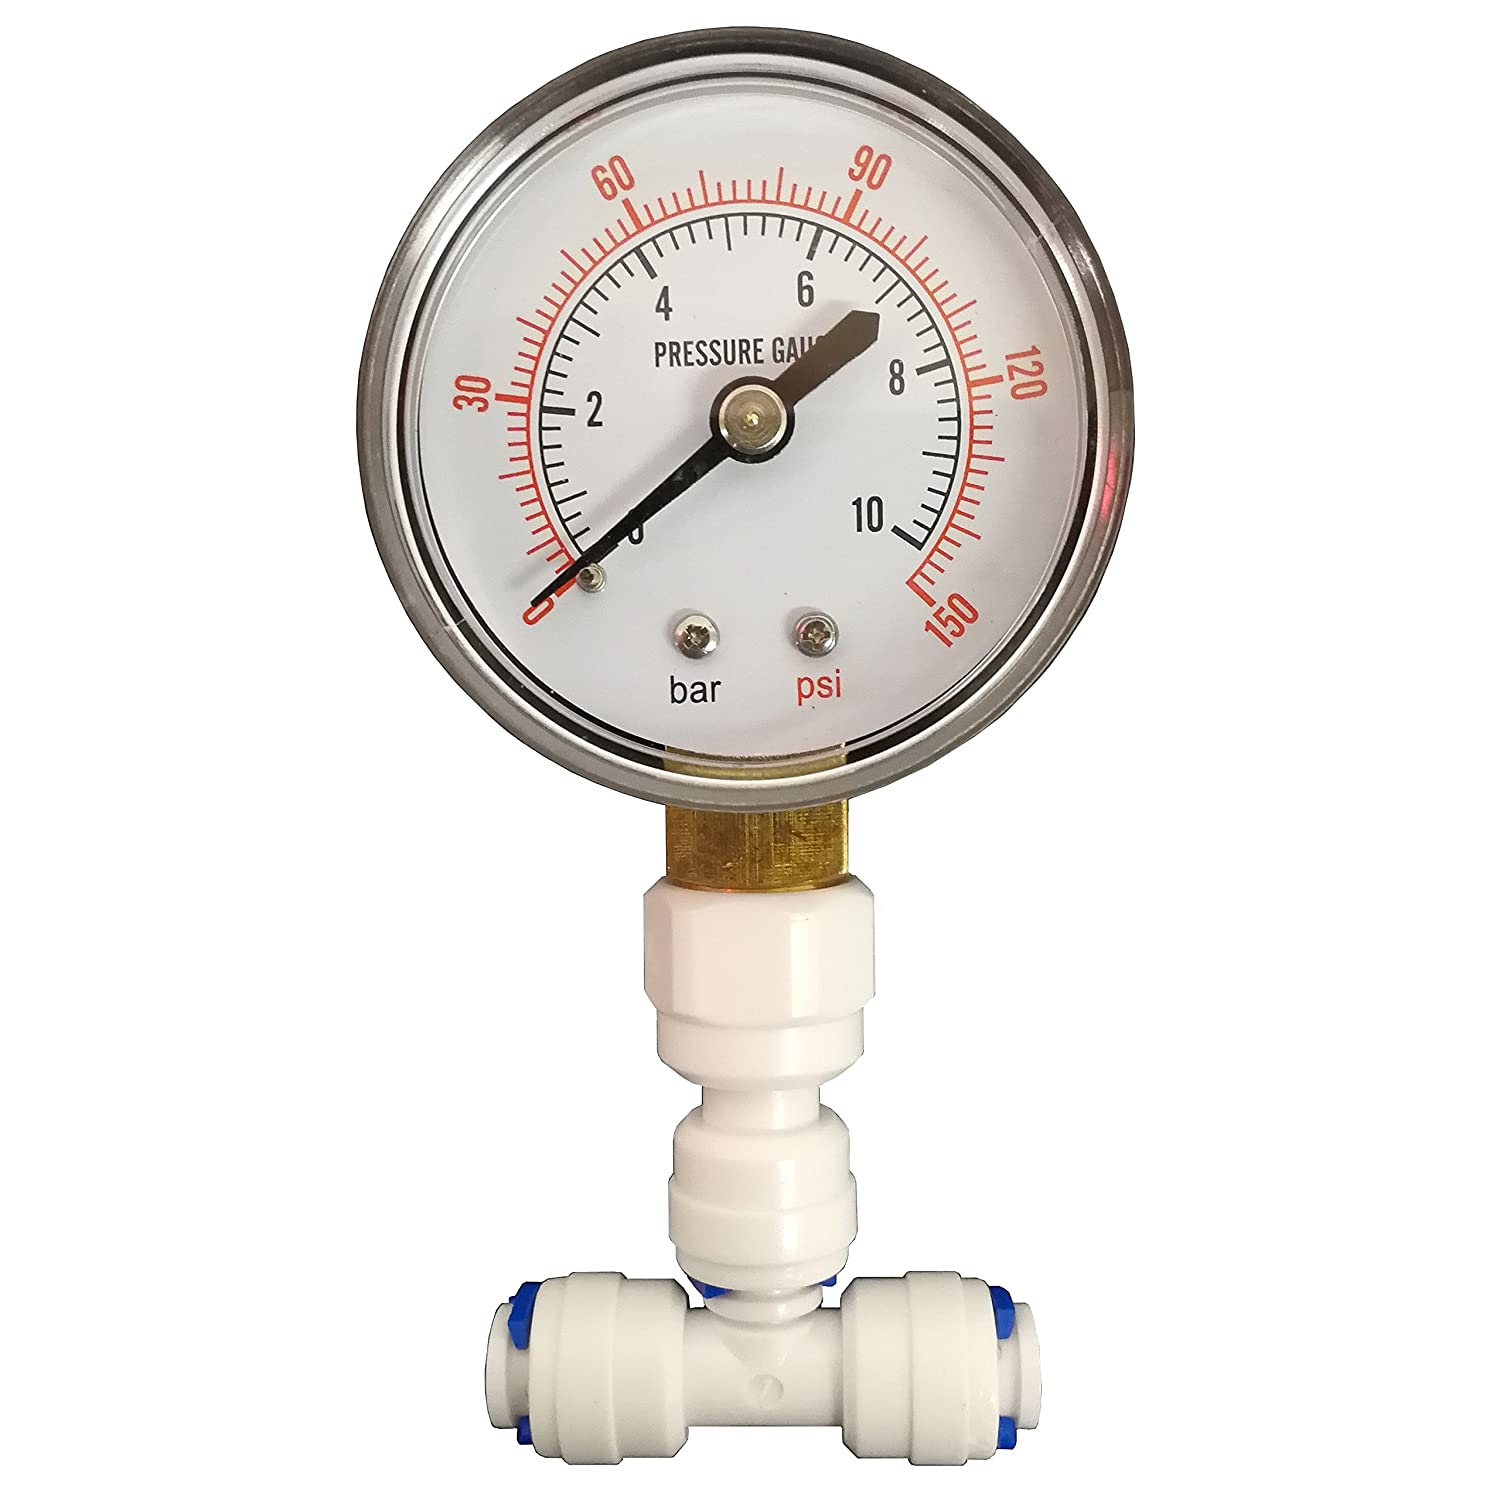 Pressure Gauge for Aquatic RO & Domestic Reverse Osmosis Systems with 1/4' Connection by Finerfilters